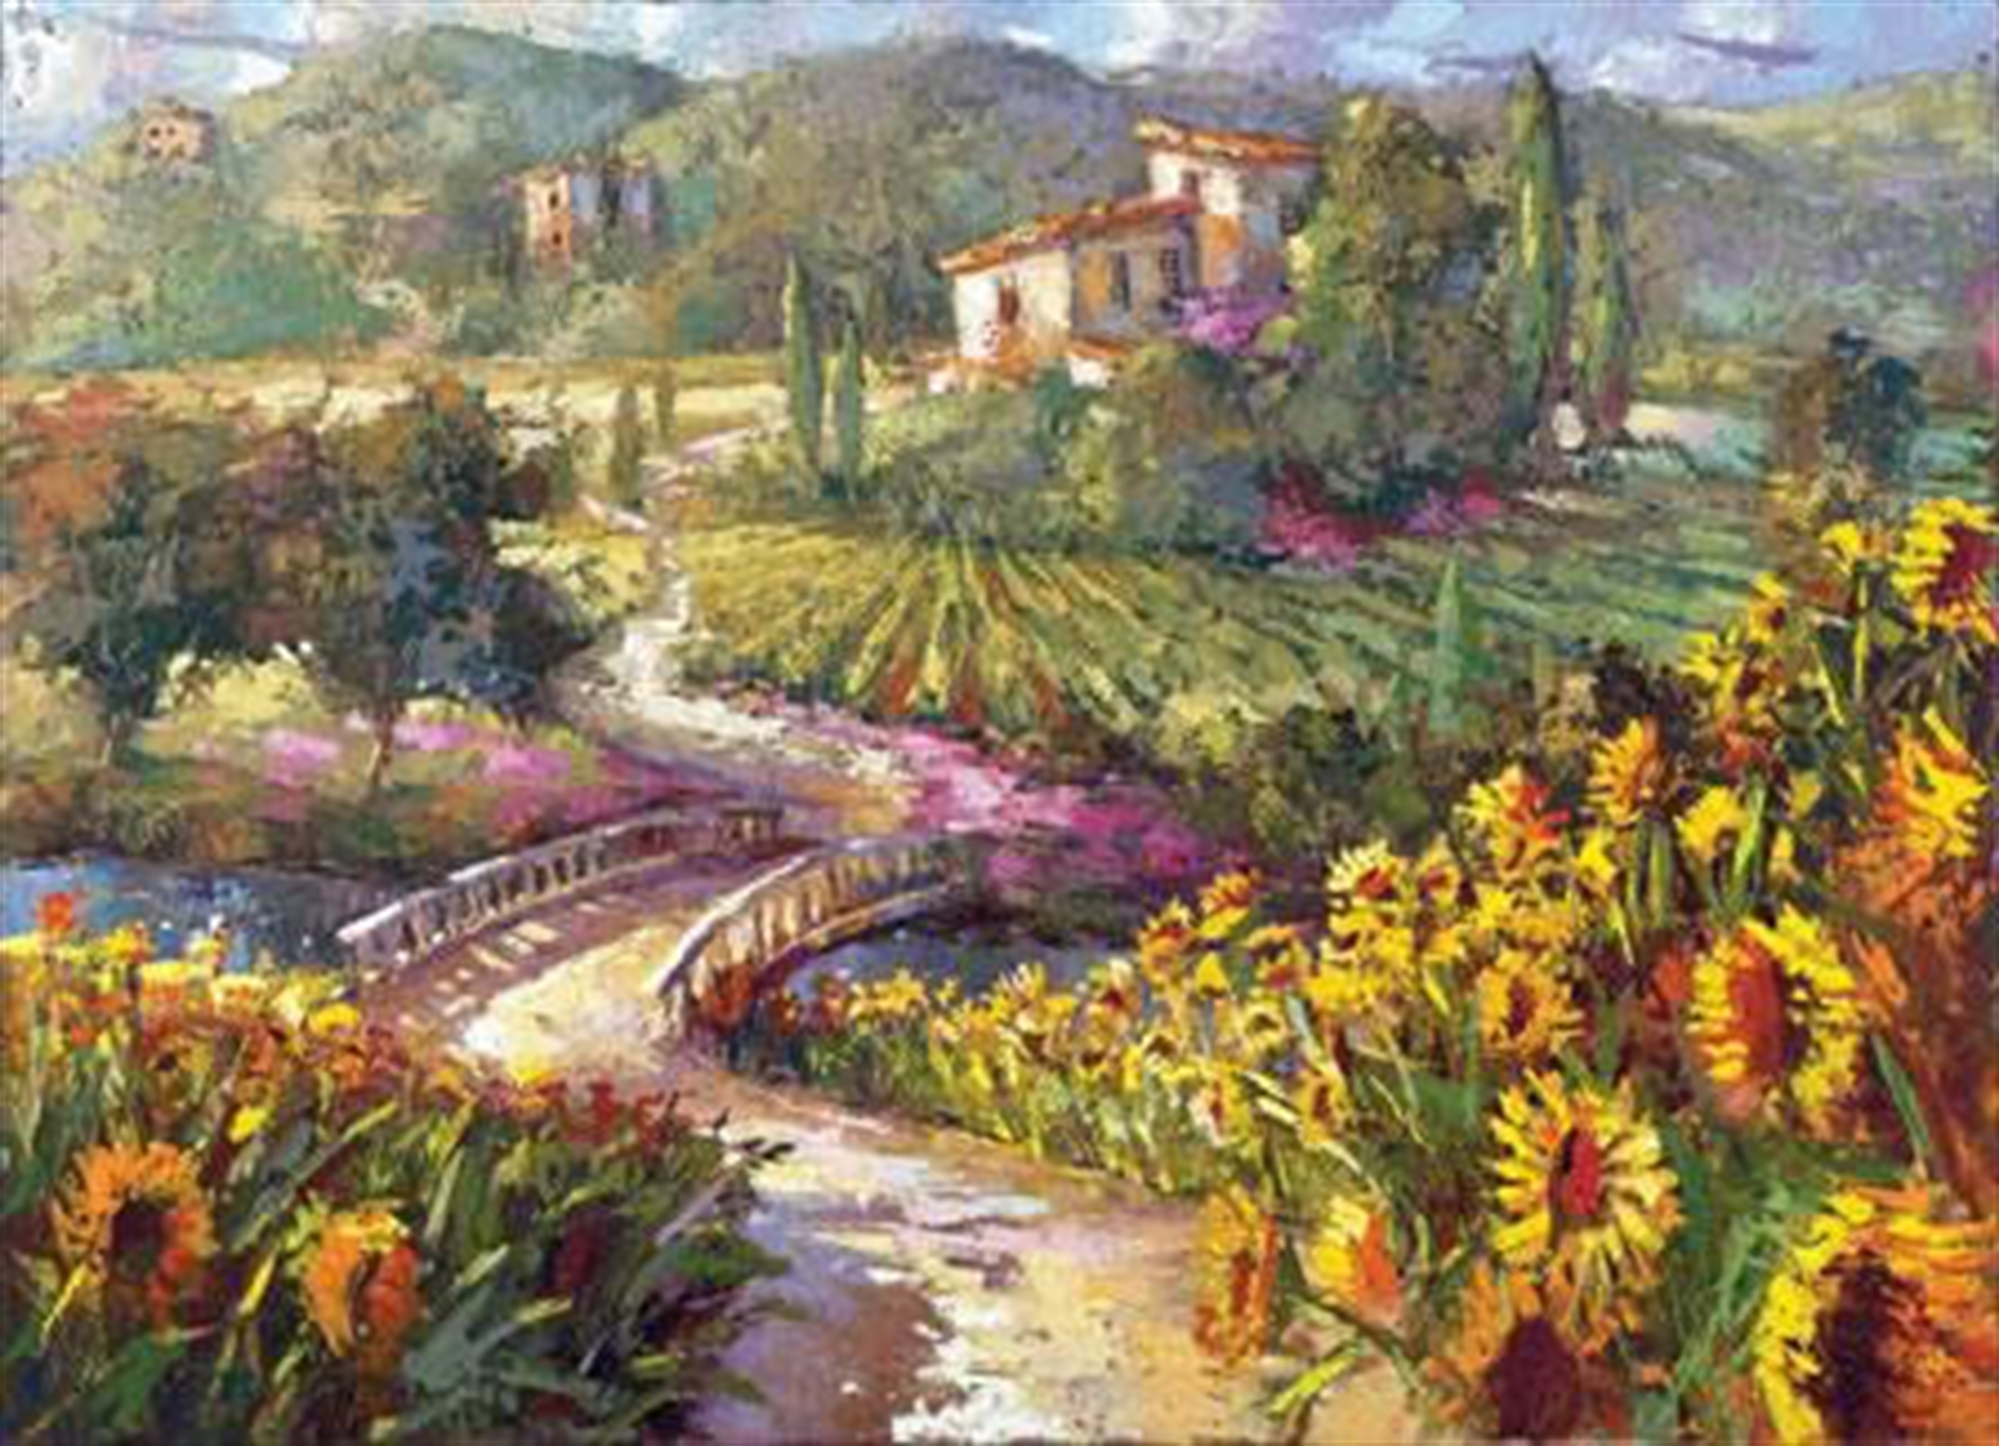 View of the Vineyard by Steven Quartly